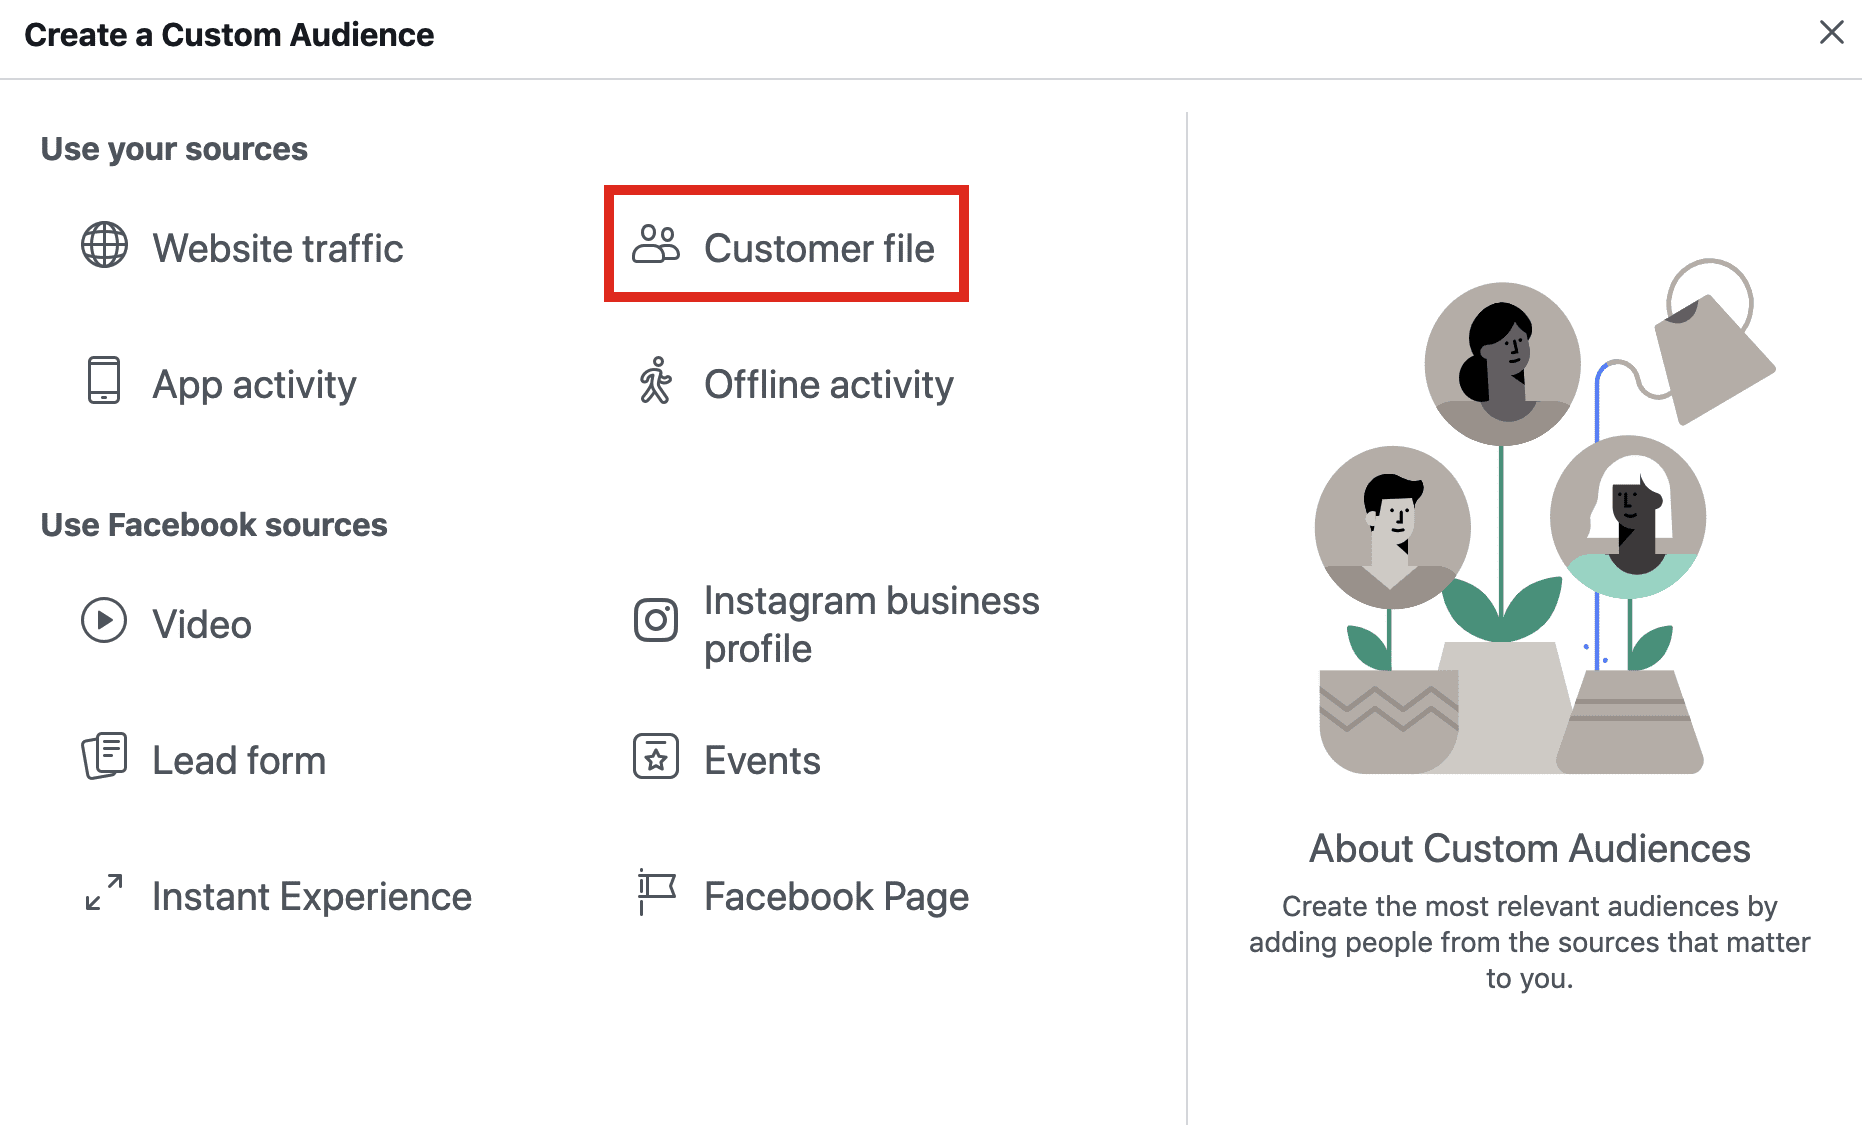 Screenshot of the initial stage to created custom audience segments on Facebook. This shows how you can use data from social media to create an audience.